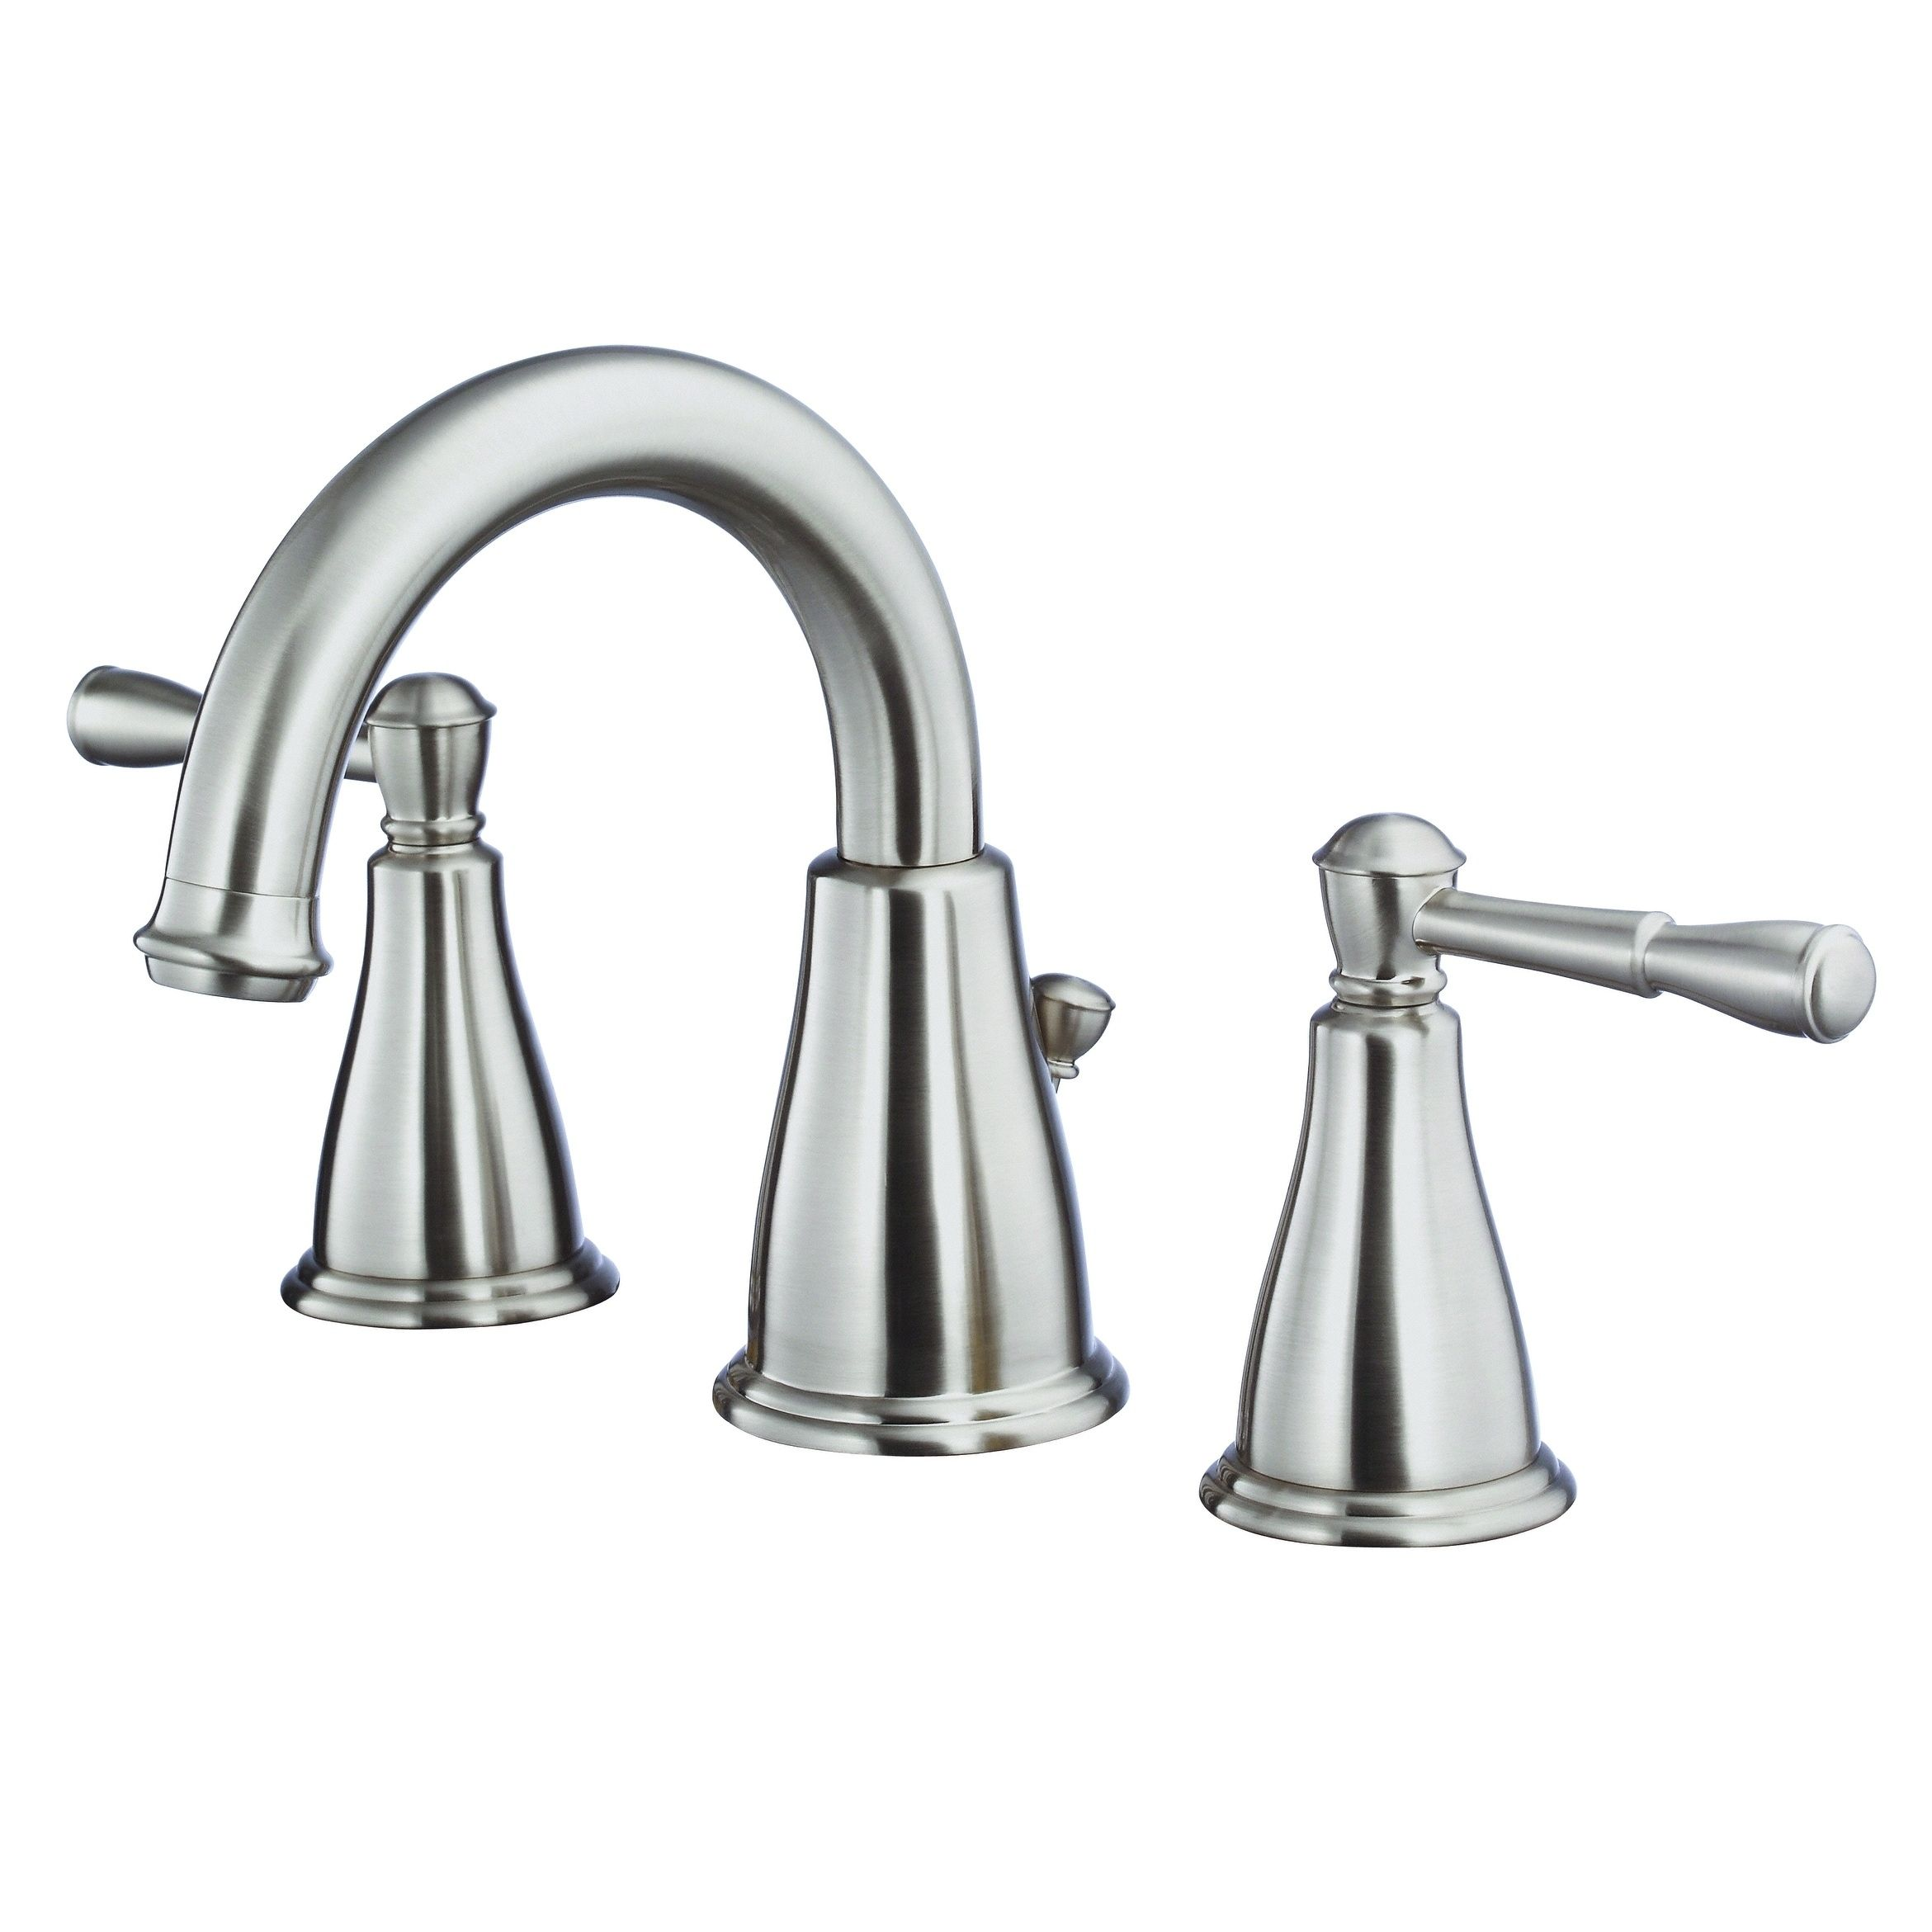 Eastham 2h Widespread Lavatory Faucet W 50 50 Pop Up Drain 1 2gpm